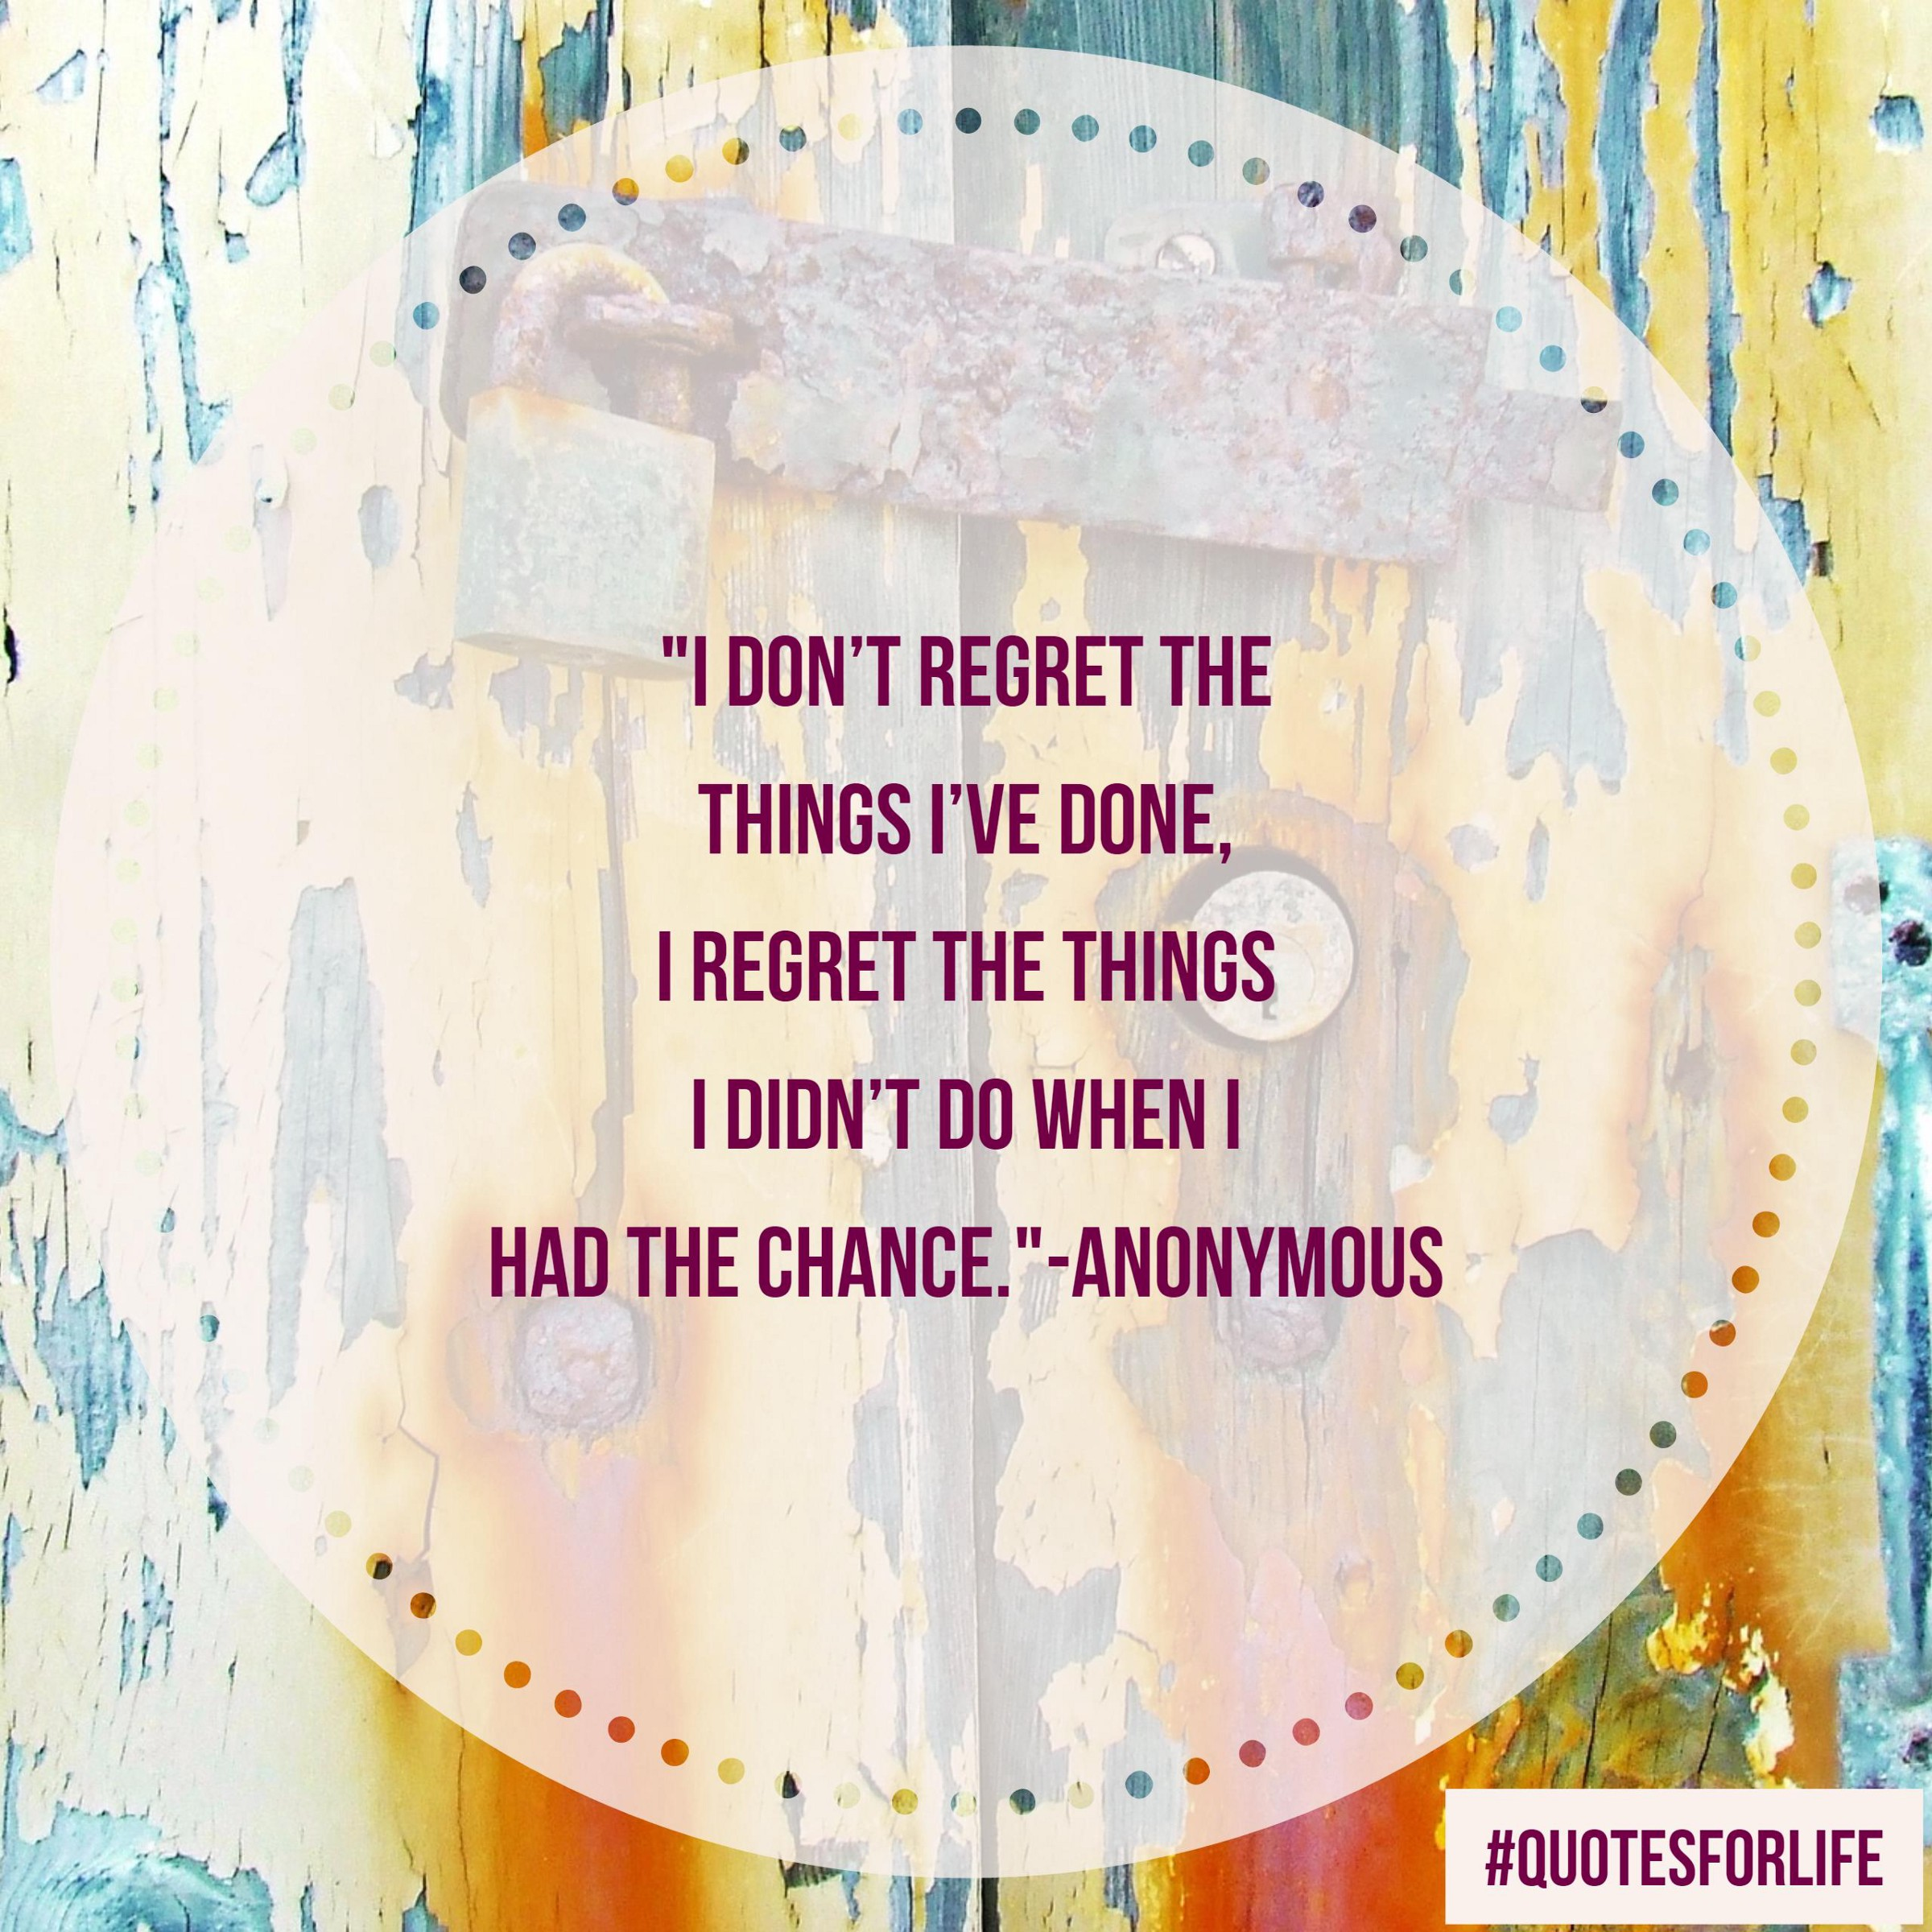 I Done I I Regret I Dont Chance Things Things I Have Didnt Do Had Wen Regret